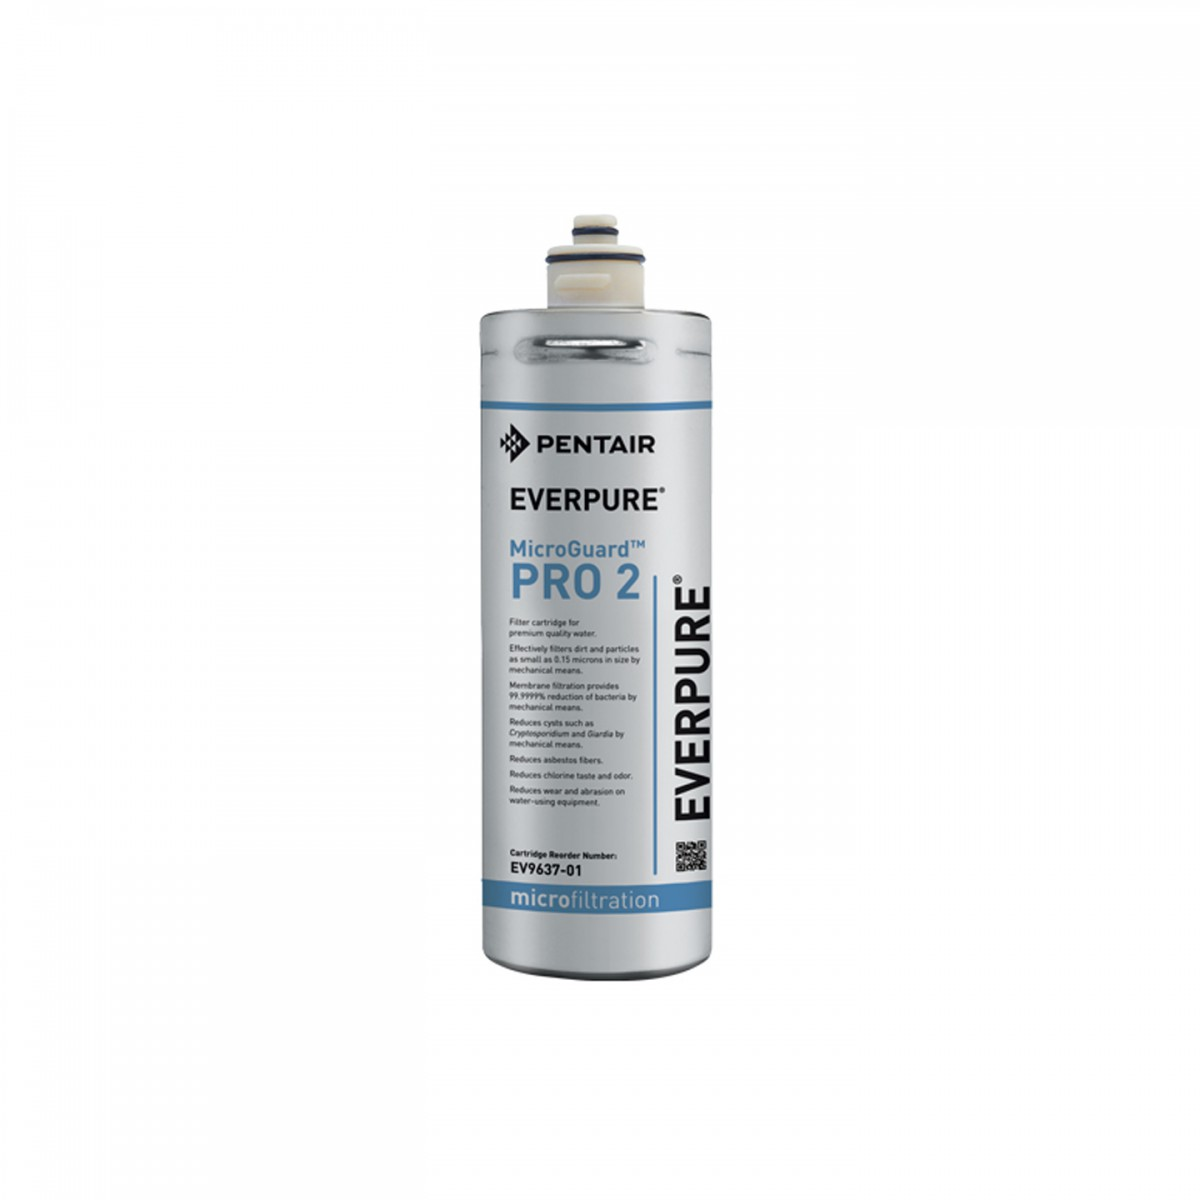 Everpure pbs 400 wet bar water filtration system ev927085 for Everpure pbs 400